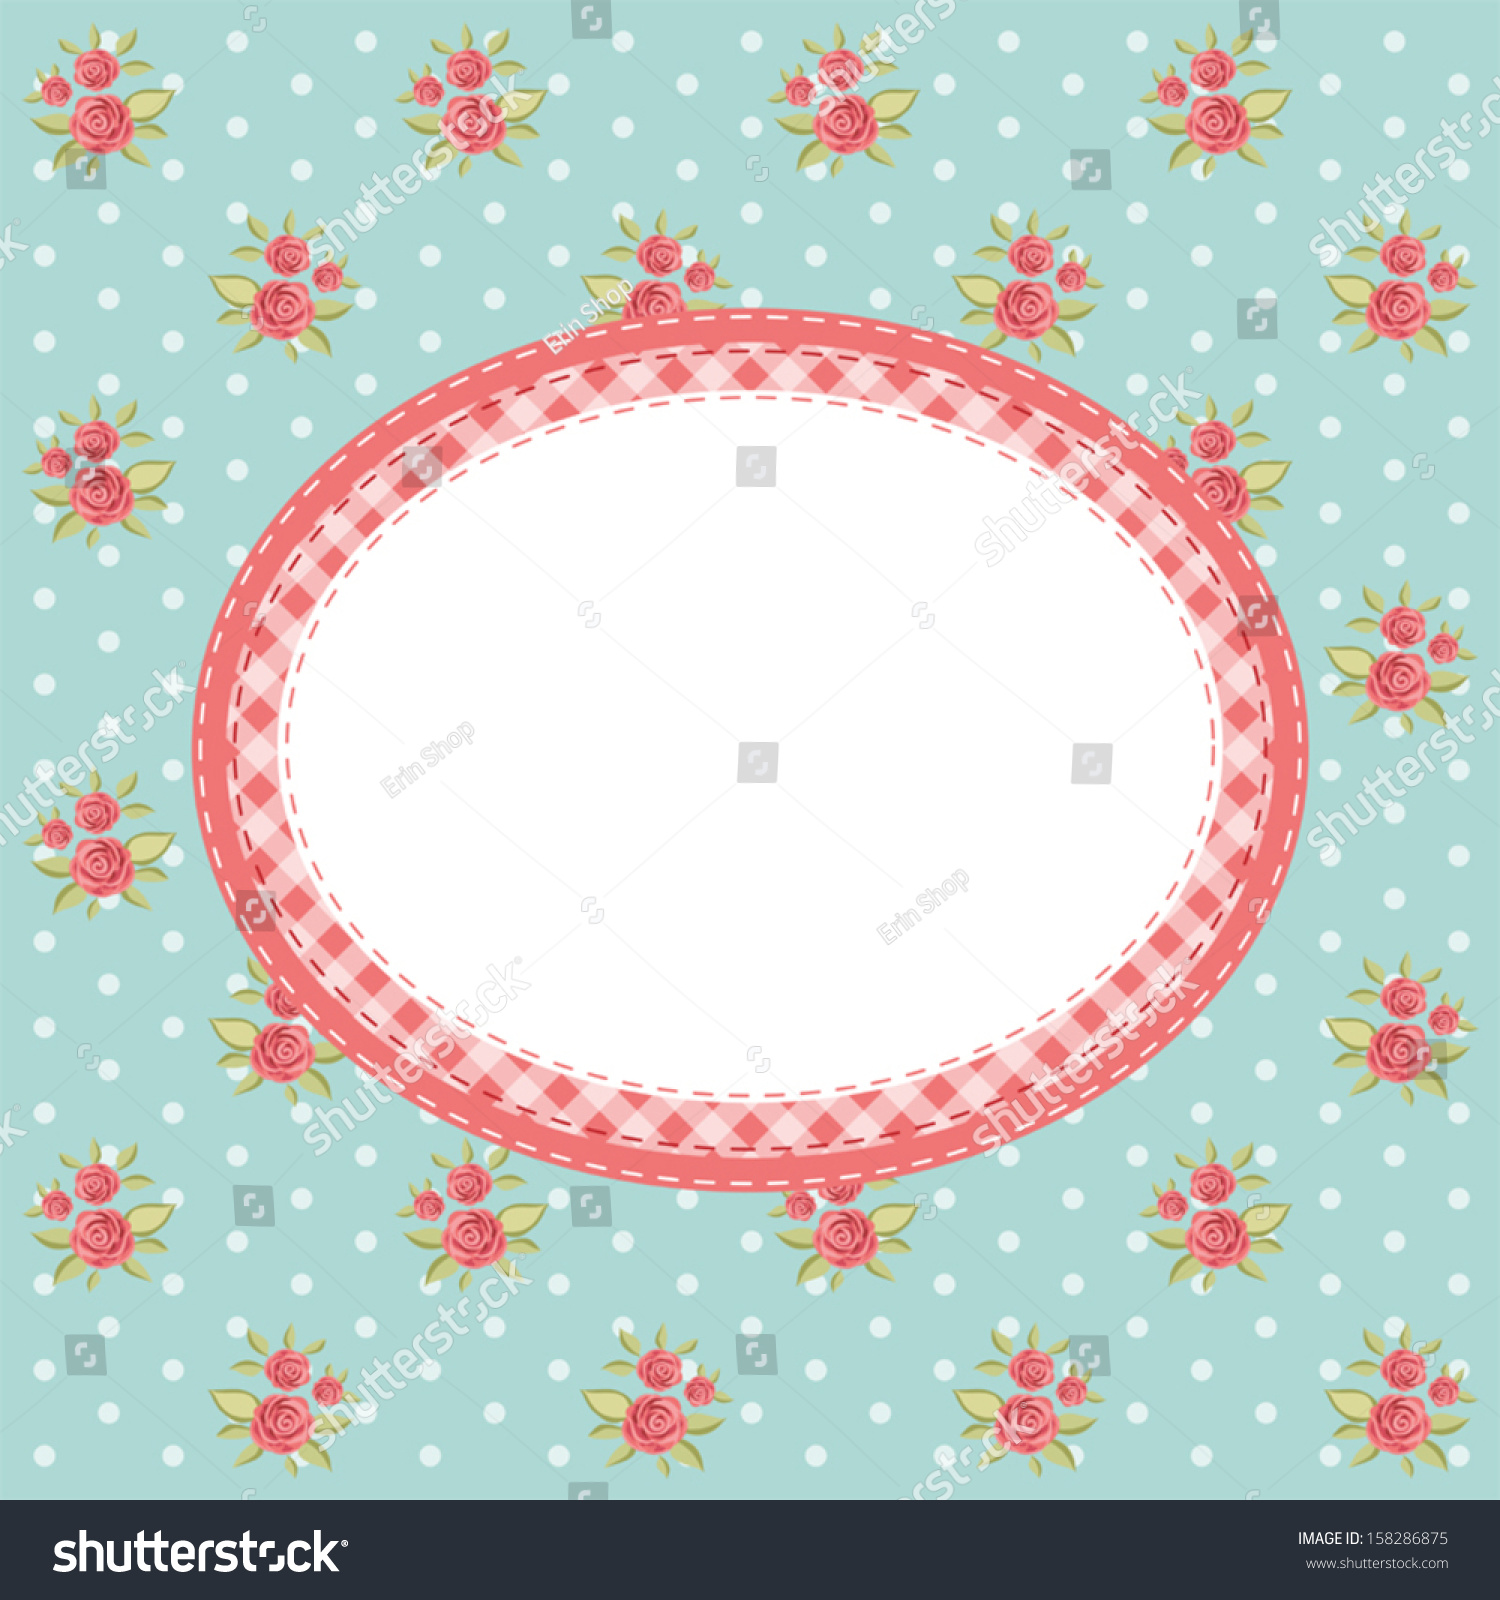 Vintage Floral Frame Roses Shabby Chic Stock Vector ...